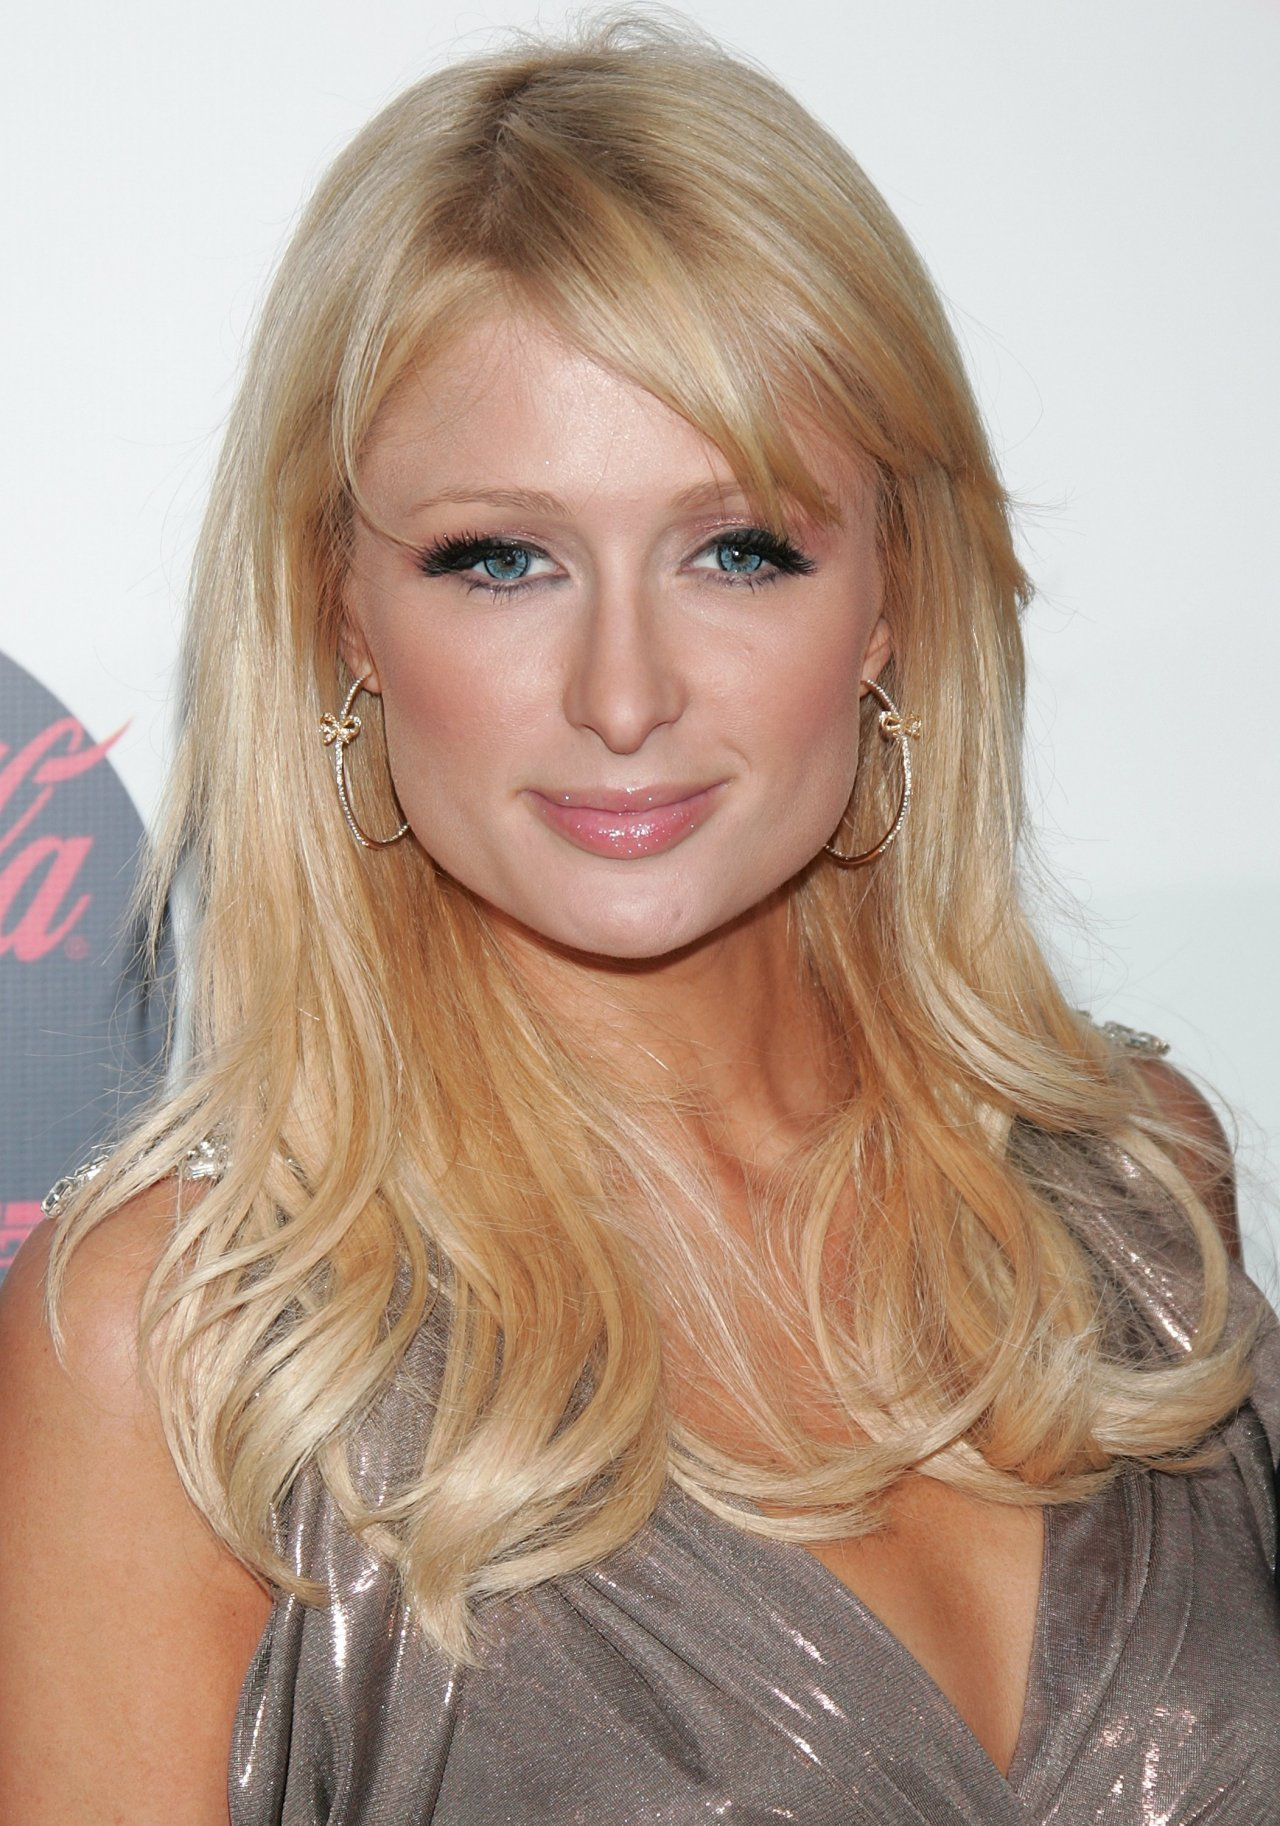 Paris Hilton wins $50k on Blackjack after earning $100k for Dj'ing